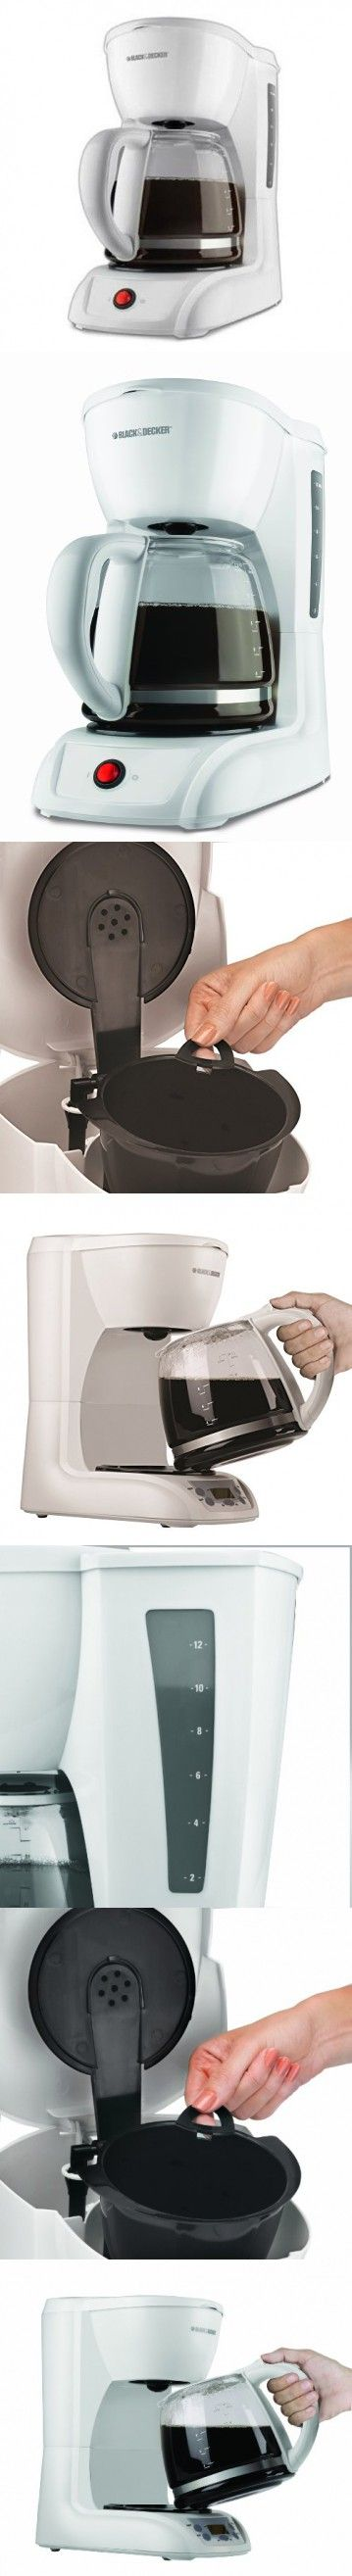 Black & Decker CM1200W 12-Cup Switch Coffeemaker, White